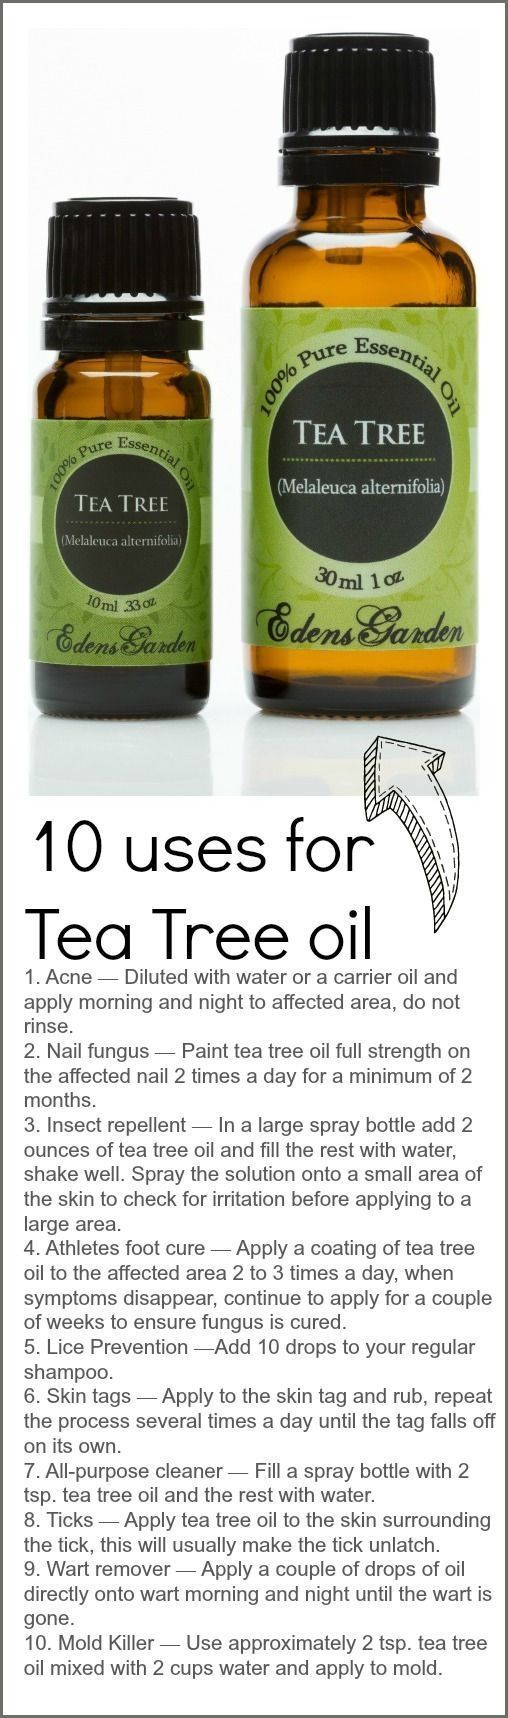 Tea Tree by lea http://www.wartalooza.com/general-information/do-wart-removers-work-on-moles-and-skin-tags